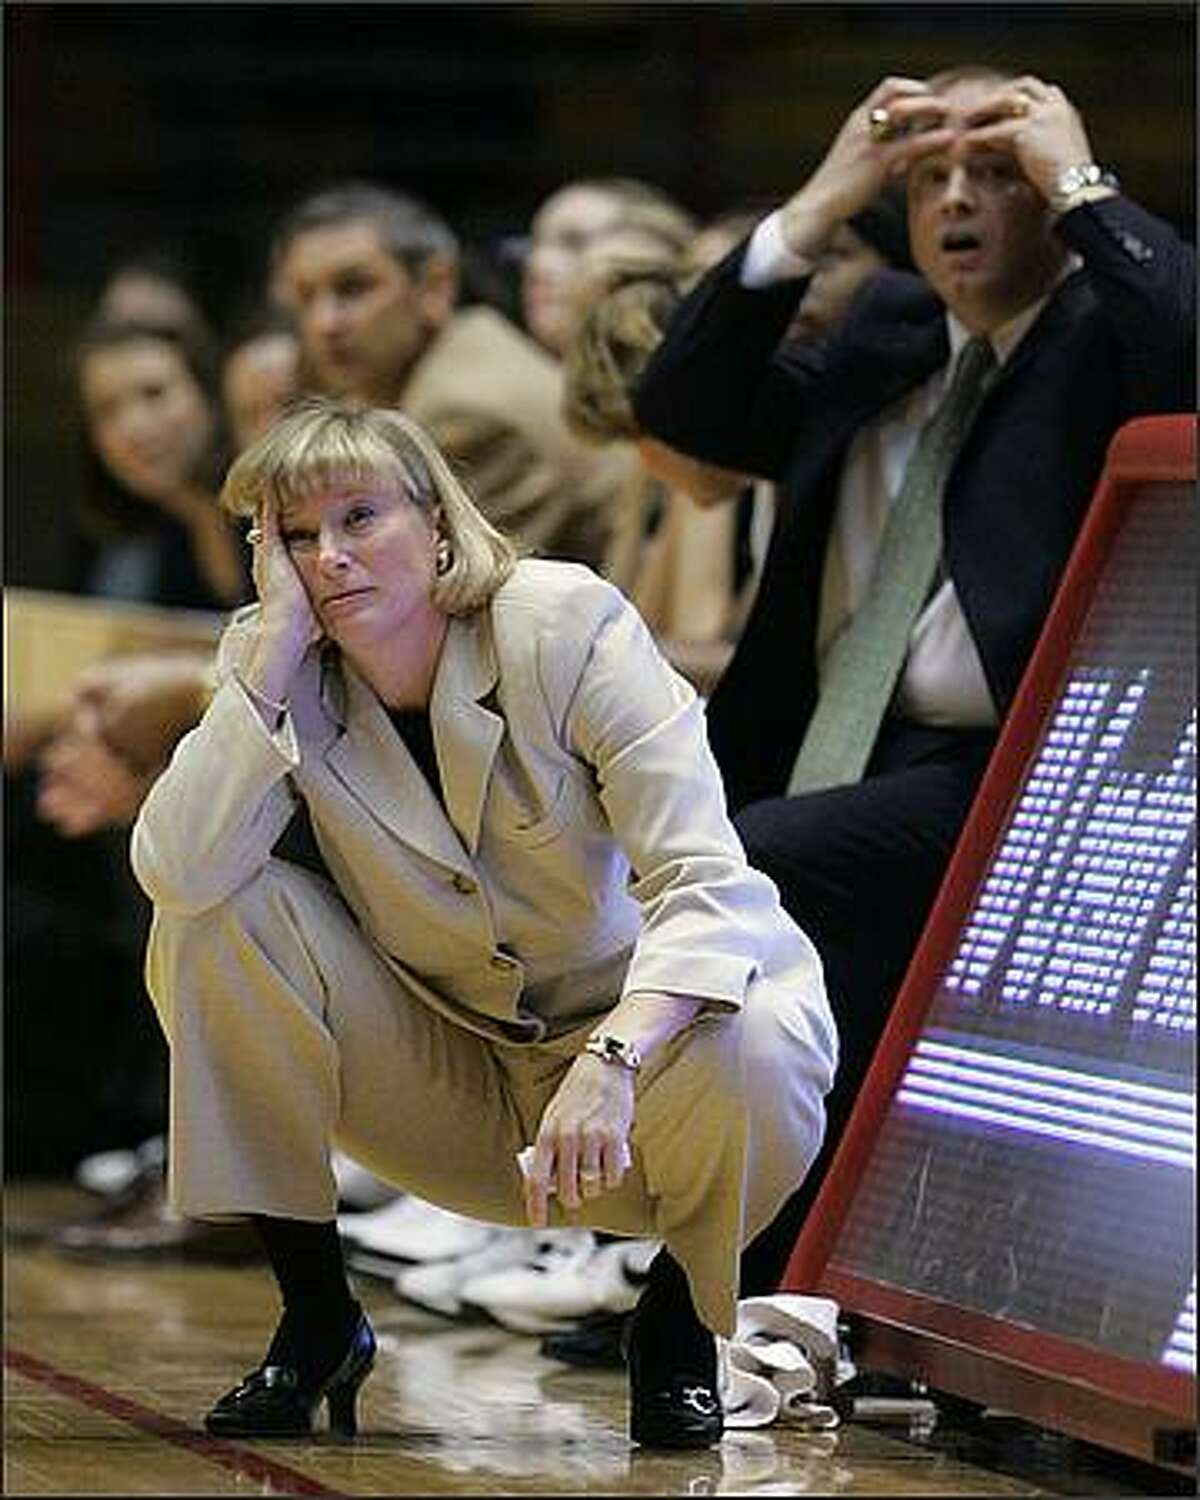 Purdue coach Sharon Versyp, left, reacts to a call during the second half of an NCAA college basketball game against Indiana in Bloomington, Ind., Monday, Jan. 19, 2009. Indiana won 71-57. (AP Photo/Darron Cummings)